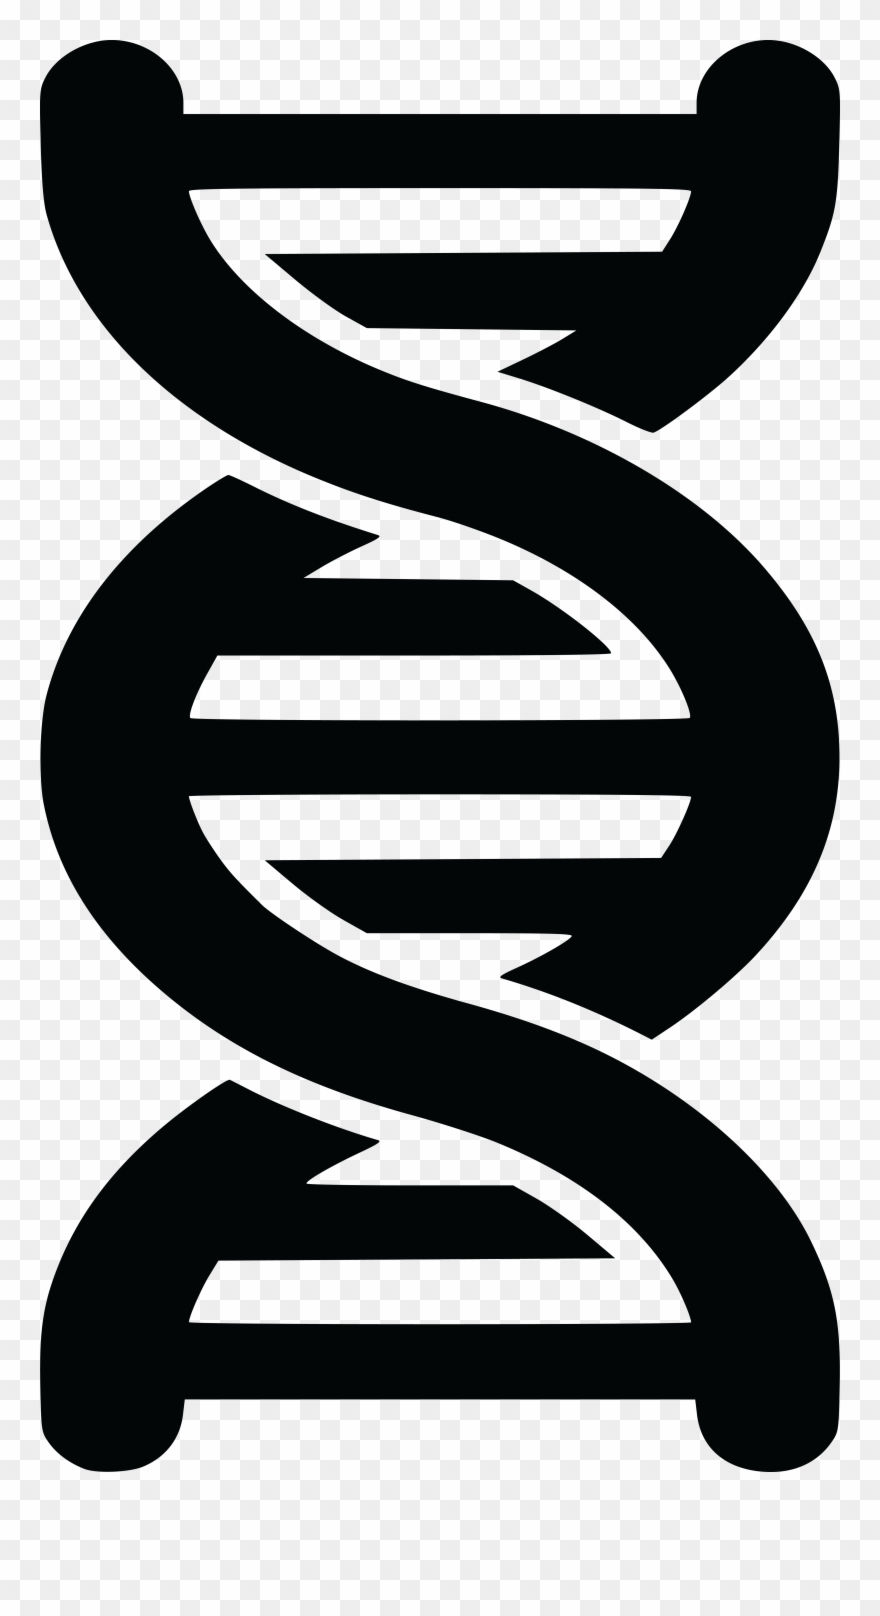 2 dna strands clipart picture transparent download Free Clipart Of A Black And White Dna Strand Double - Double Helix ... picture transparent download